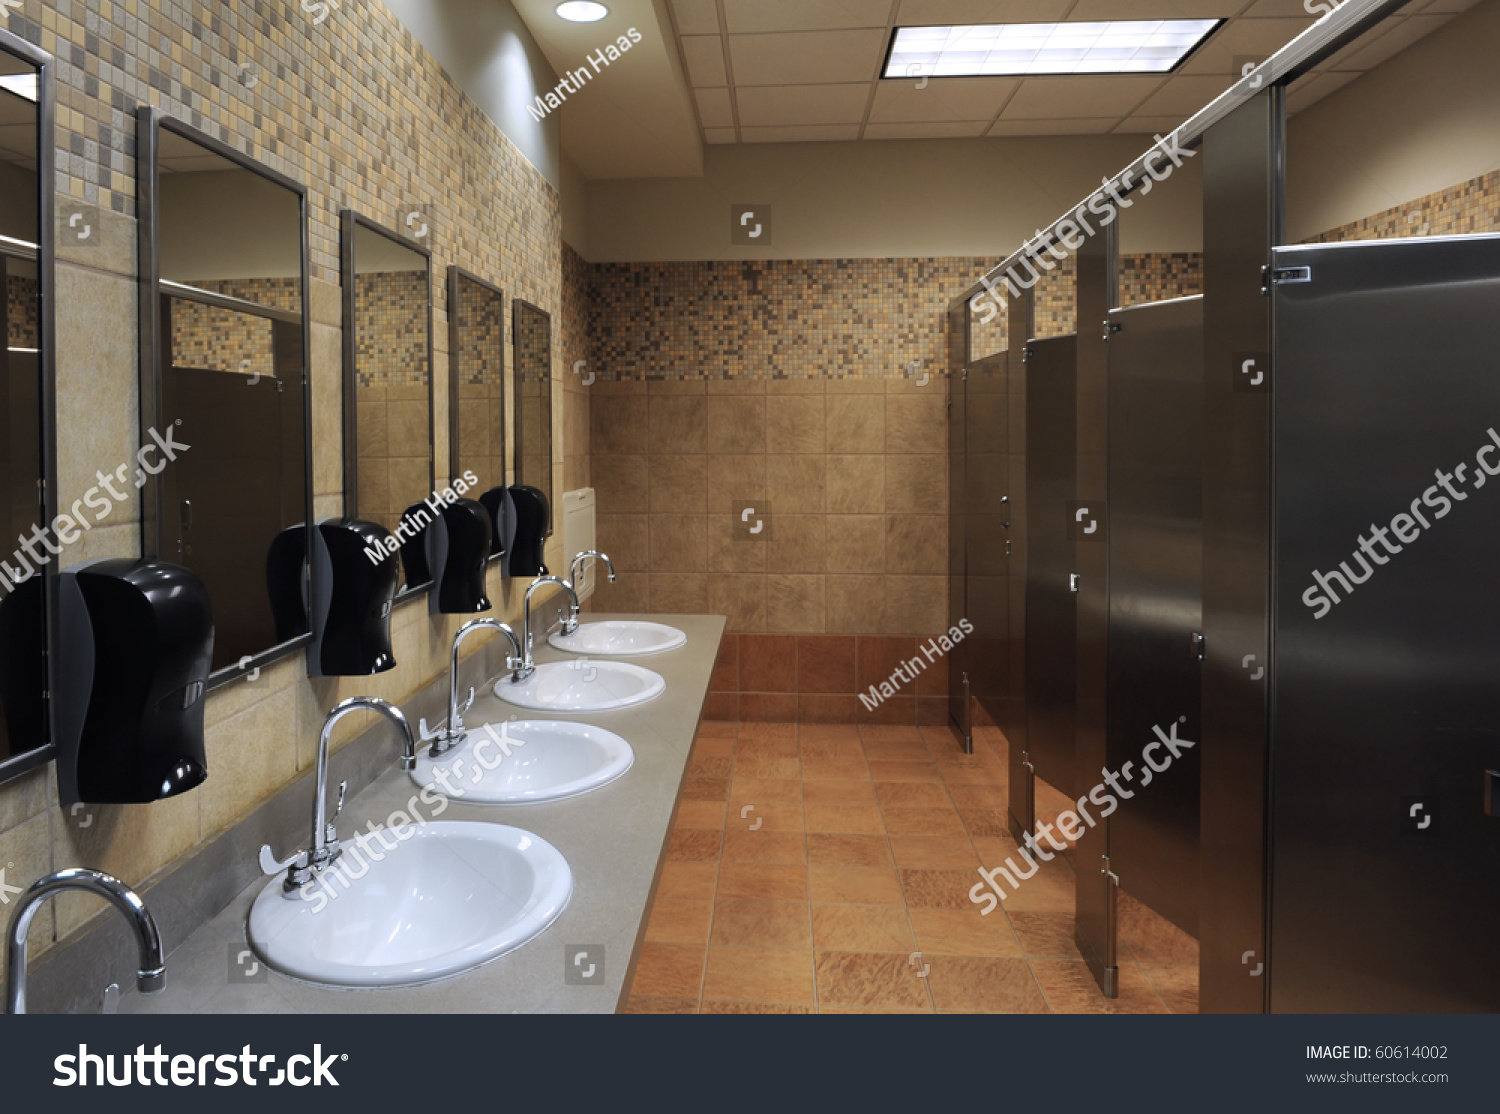 Lavatory Sinks In A Public Restroom Stock Photo 60614002 ...